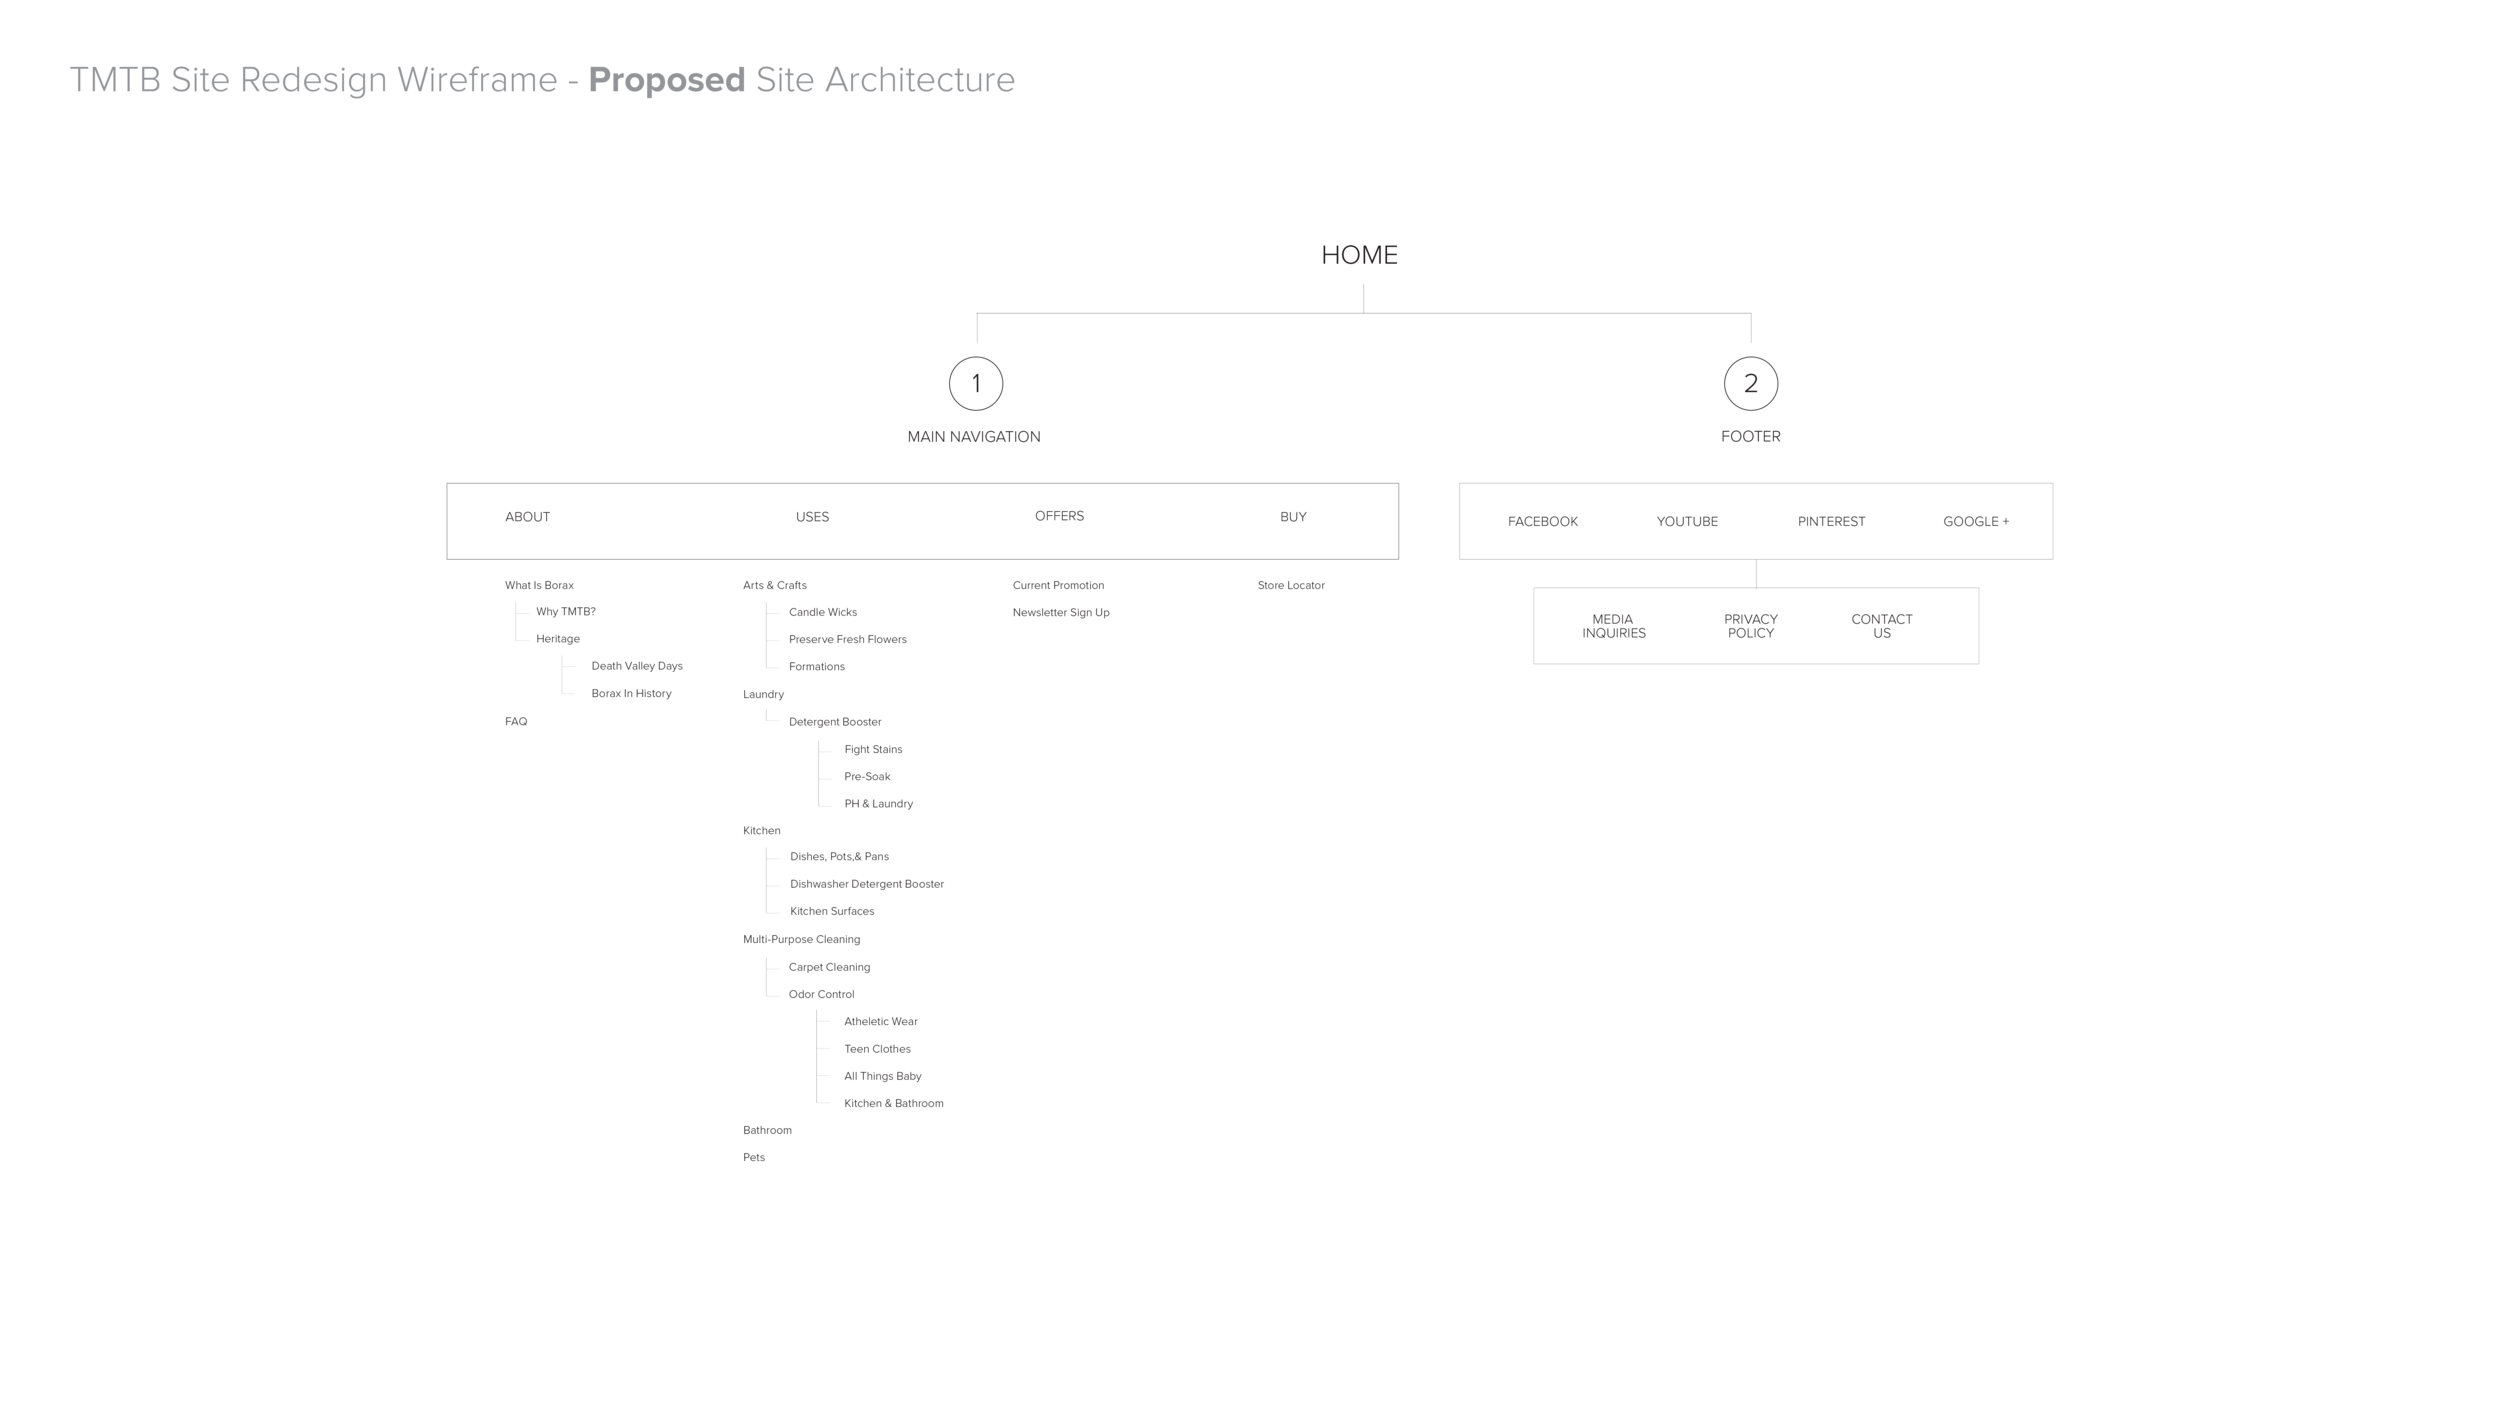 TMTB_Proposed_Wireframe.png